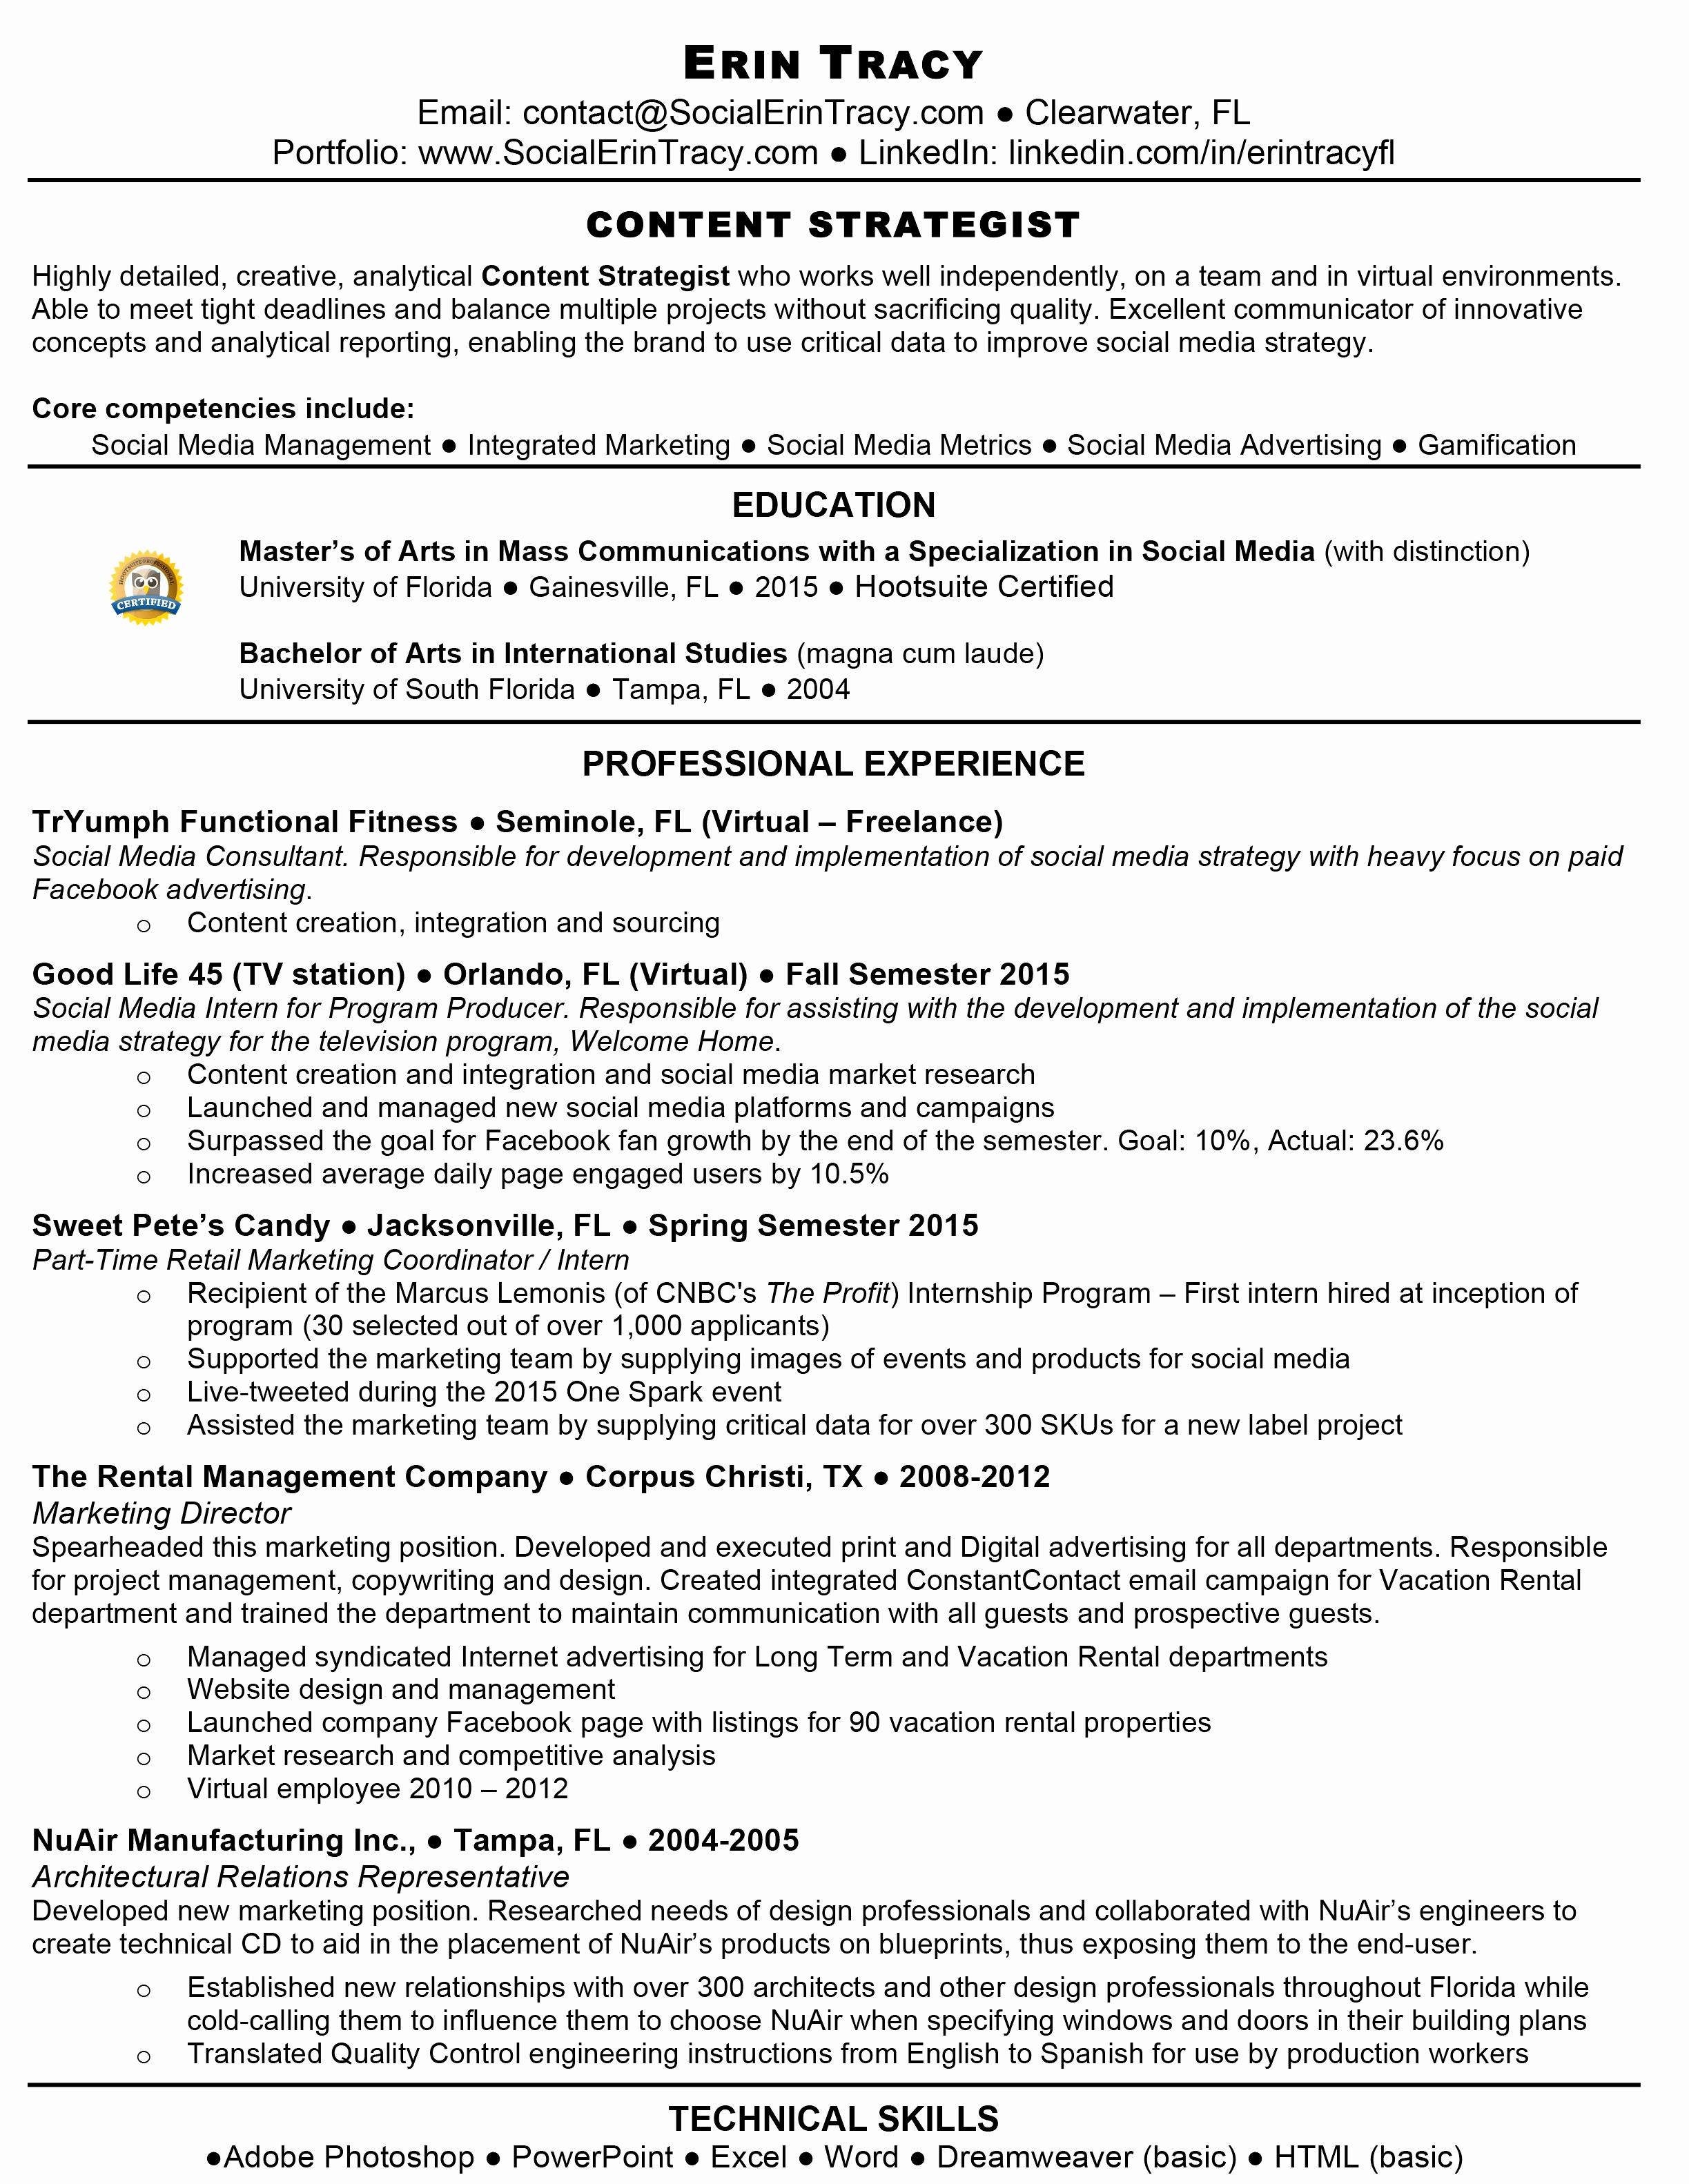 List Of Core Competencies Resume Examples - Core Petencies Resume Examples Awesome Sample Resume Skills and